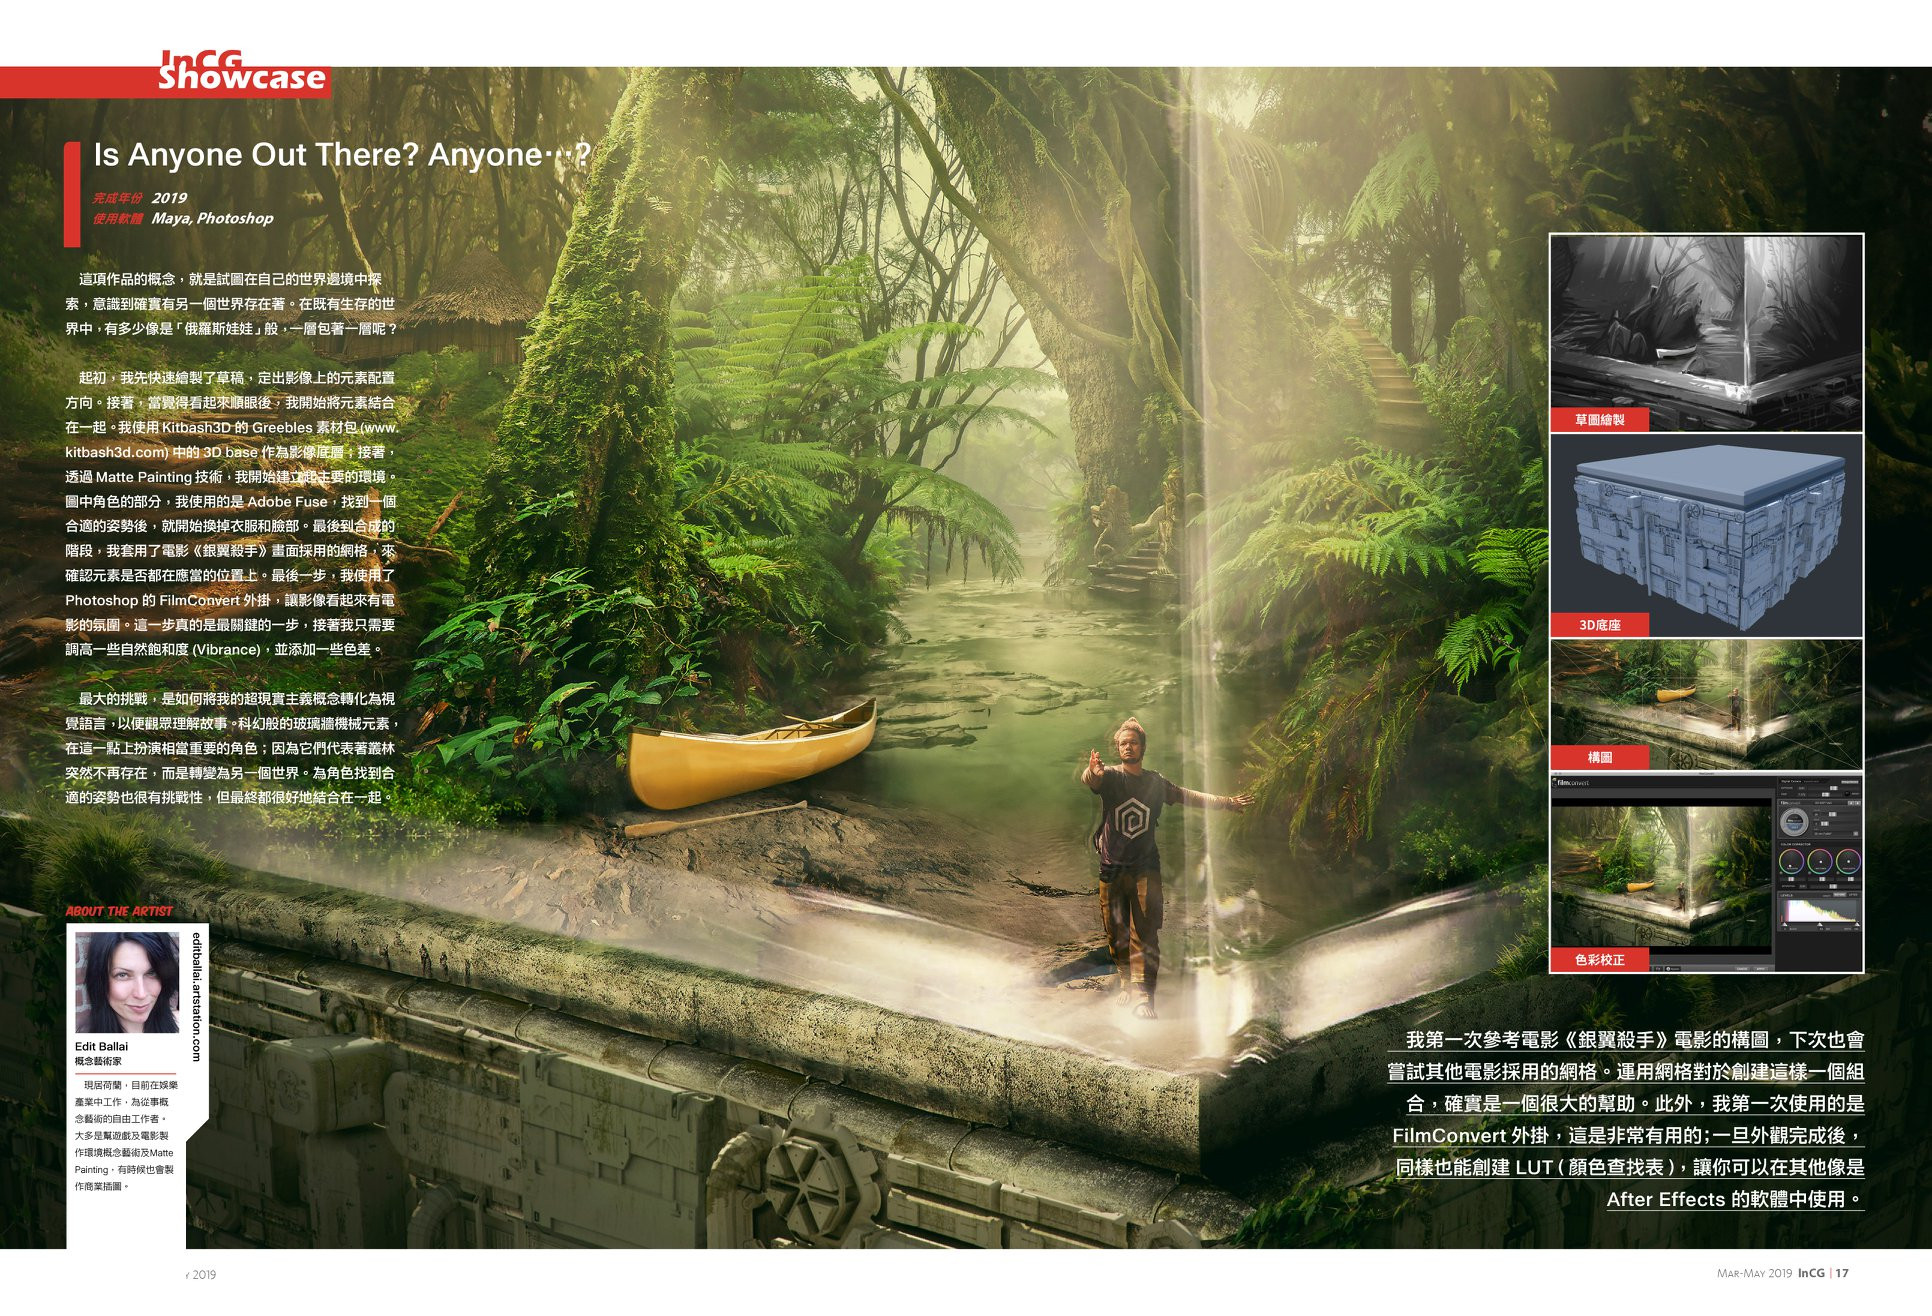 "Thanks 映CG / INCG Media for featuring my work in your magazine on the ""Showcase"" section :)"